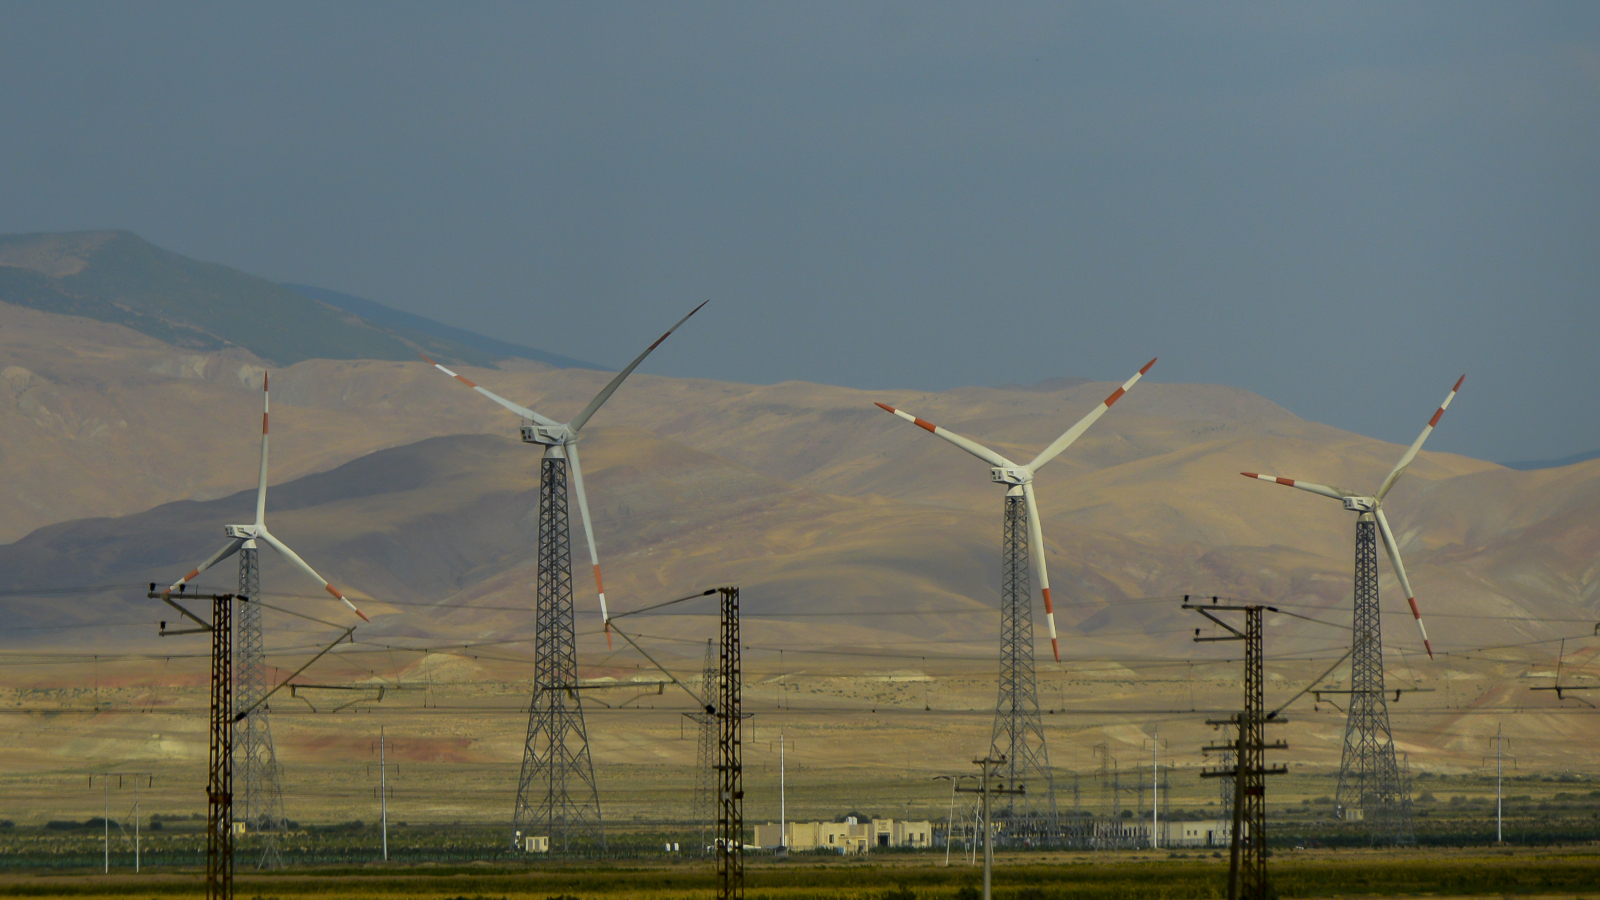 Wind farm on the Baku-Guba highway, Azerbaijan